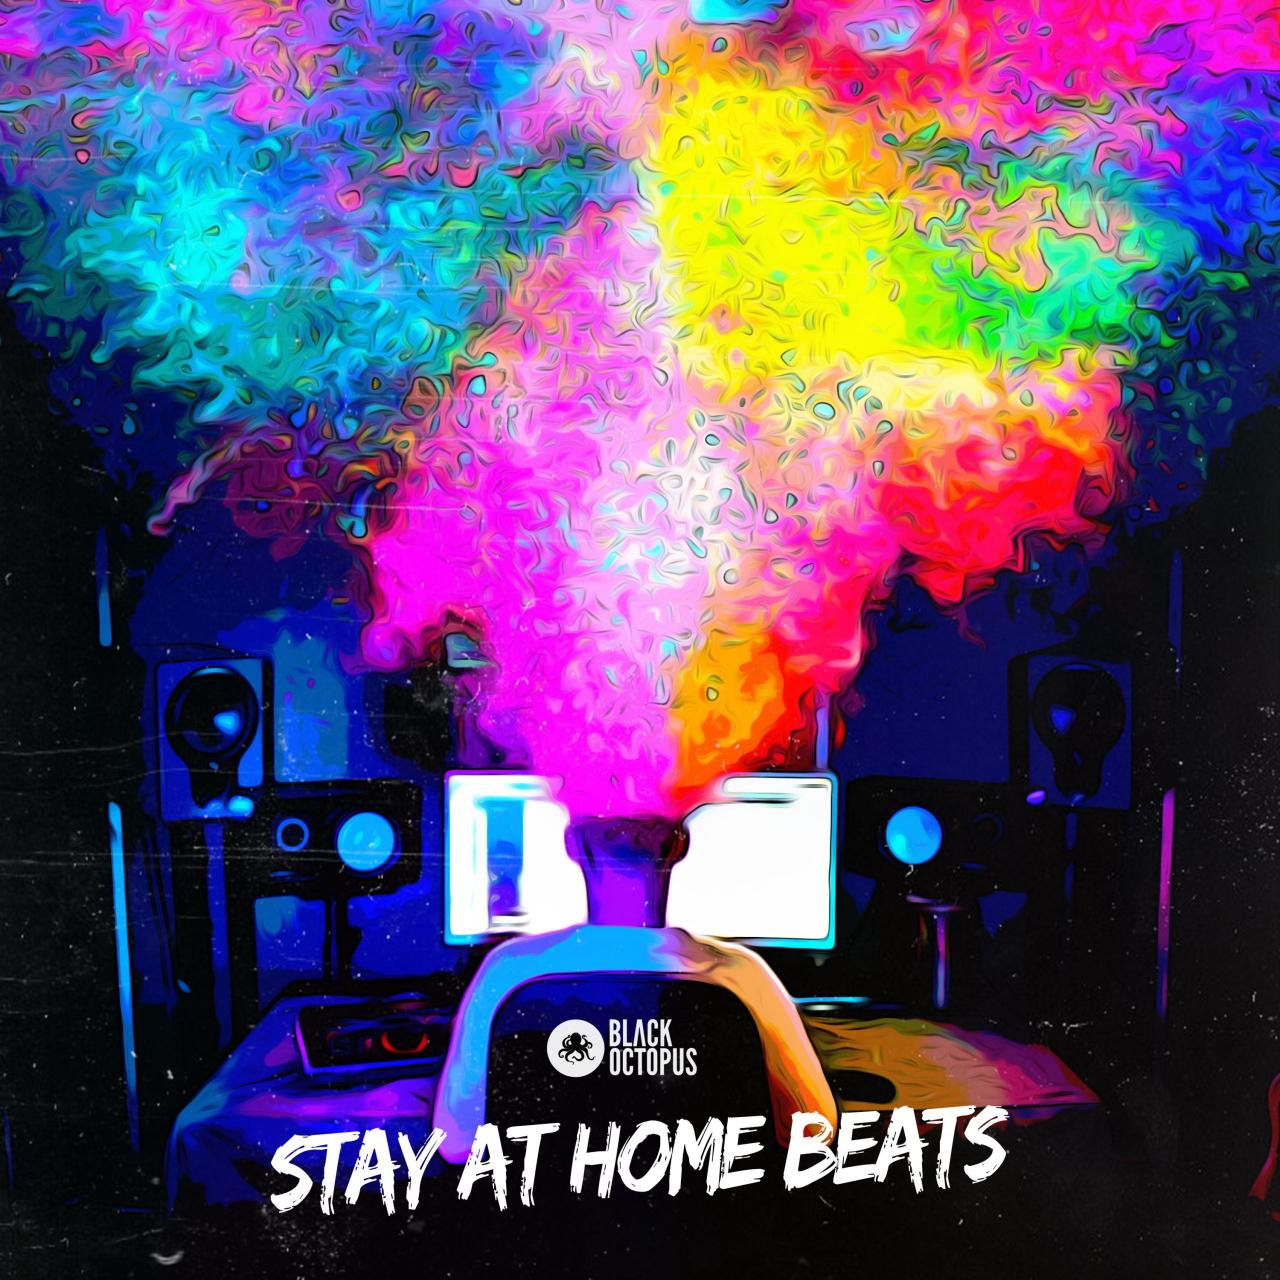 Stay-At-Home-Beats-V2-scaled.jpg